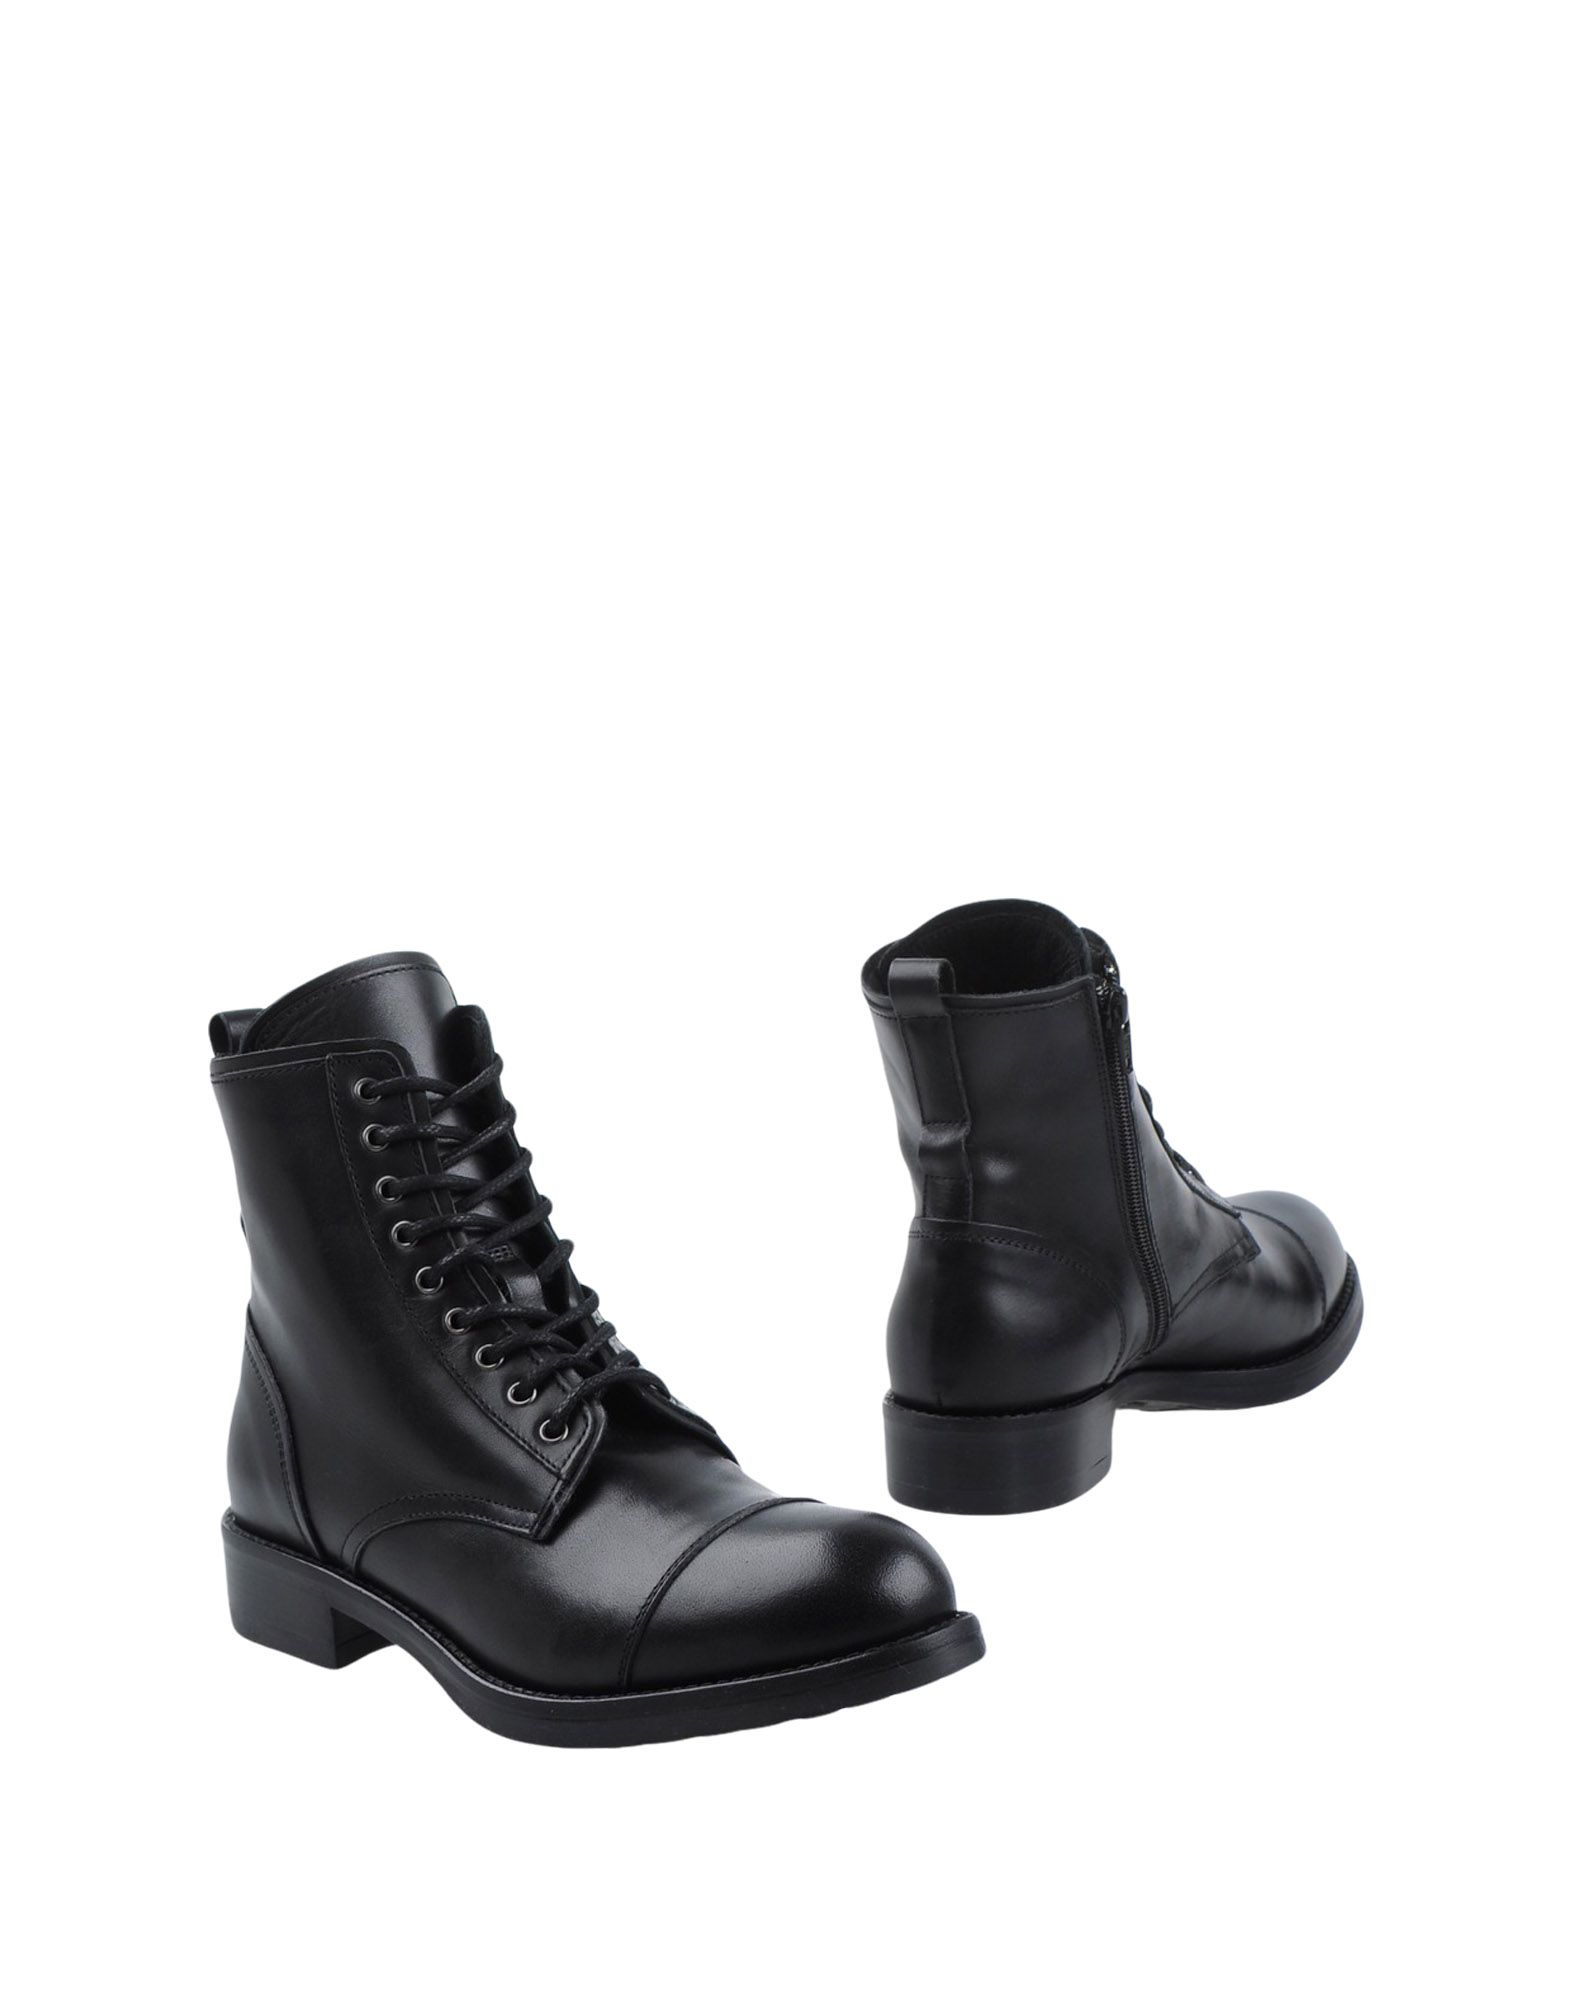 Mally Ankle Ankle Boot - Women Mally Ankle Ankle Boots online on  Canada - 11311652QL 9371d8